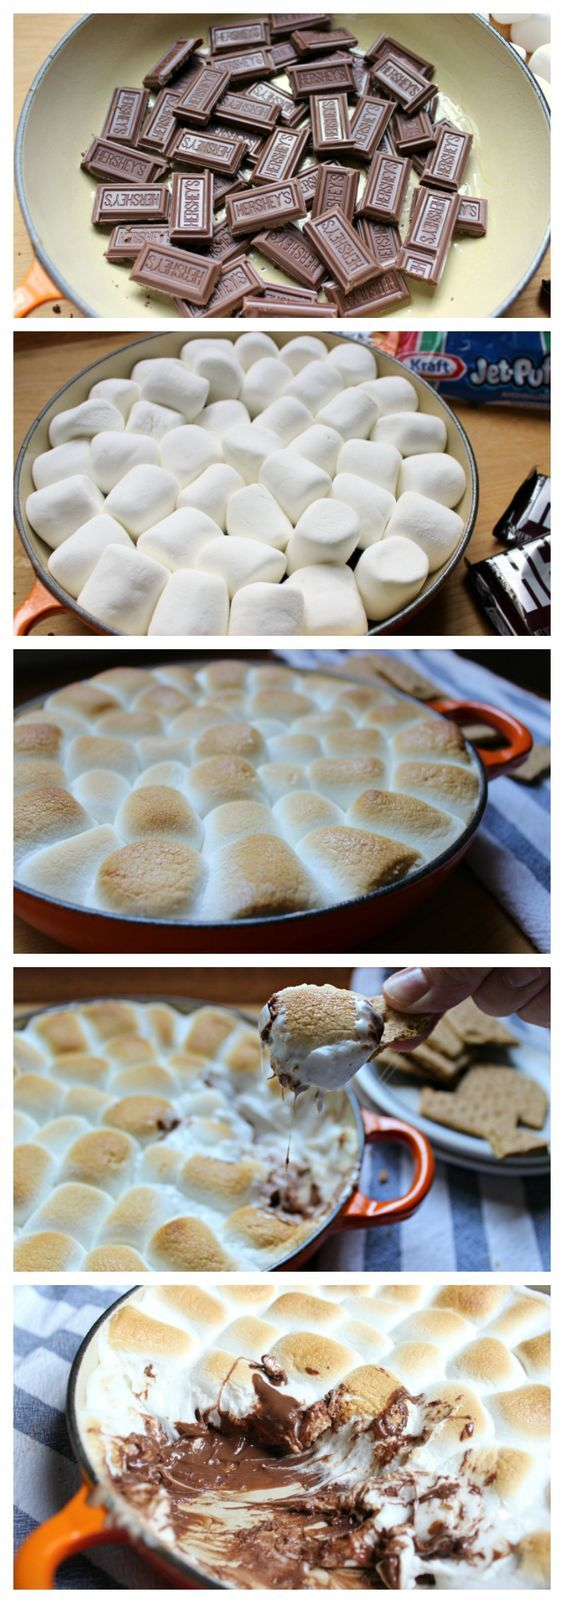 It's so easy to make S'mores without a campfire. Check out this fun recipe for the family.